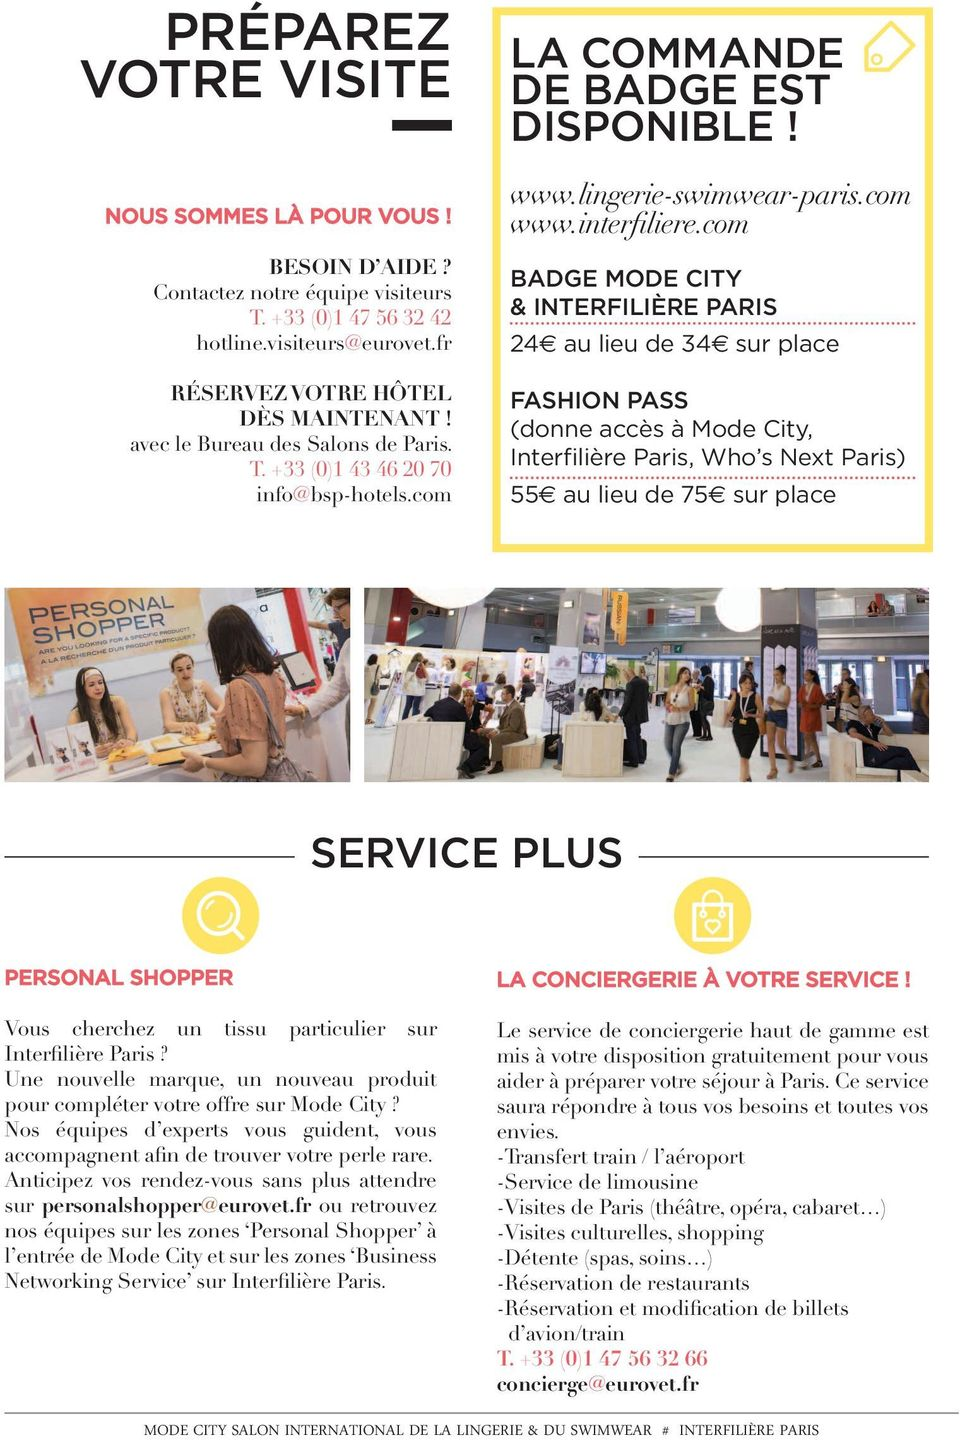 com BADGE MODE CITY & INTERFILIÈRE PARIS 24 au lieu de 34 sur place FASHION PASS (donne accès à Mode City, Interfilière Paris, Who s Next Paris) 55 au lieu de 75 sur place SERVICE PLUS PERSONAL